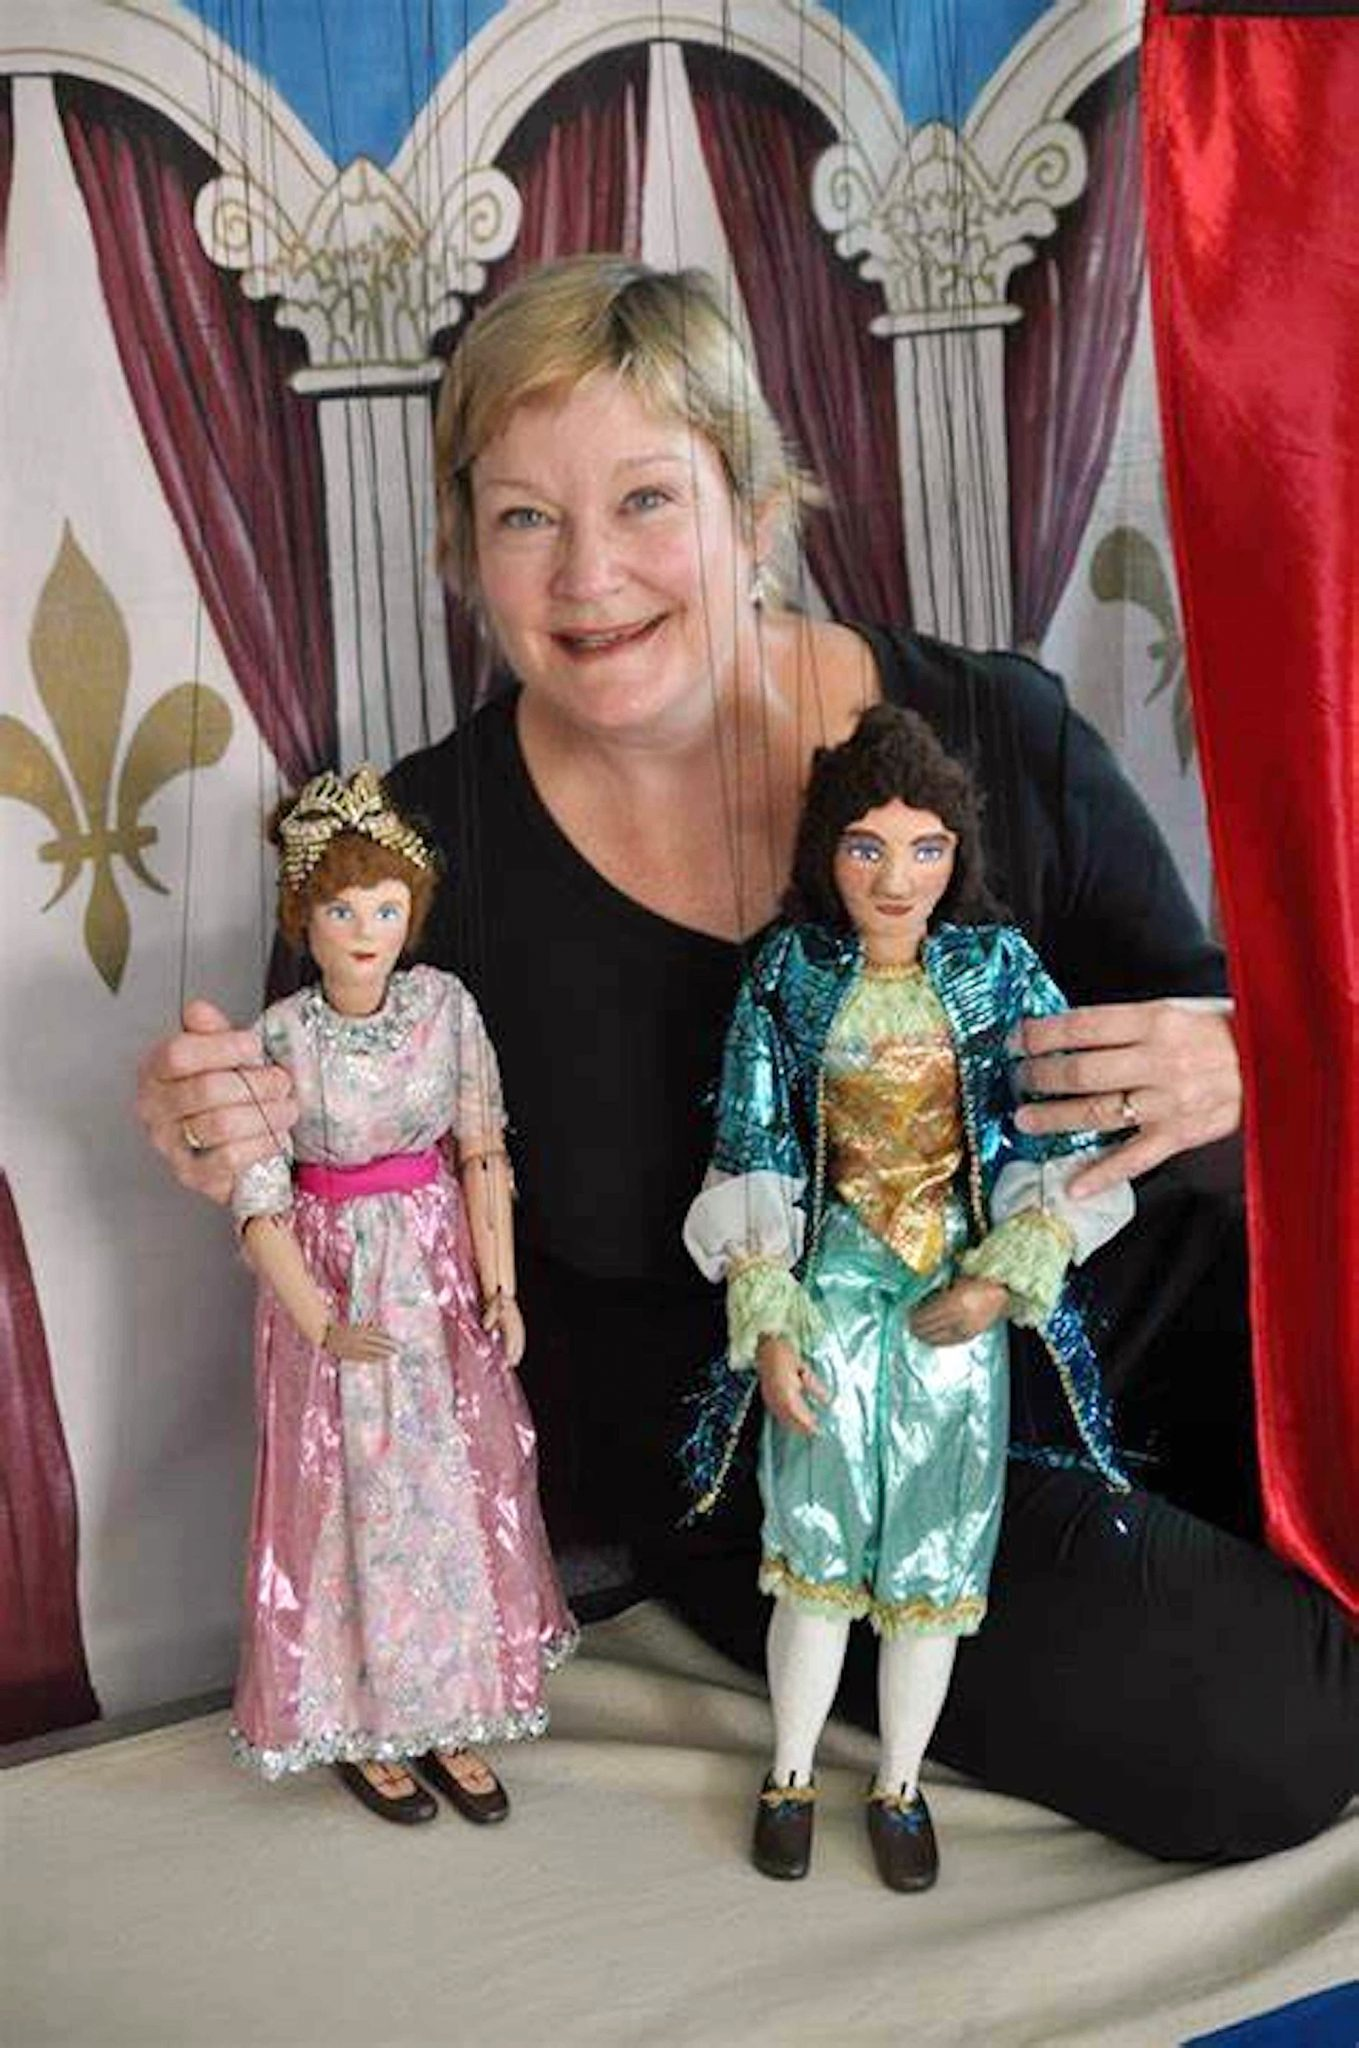 Live Entertainment at The Woodlands Children's Museum — Delight in music, magic and marionettes this month